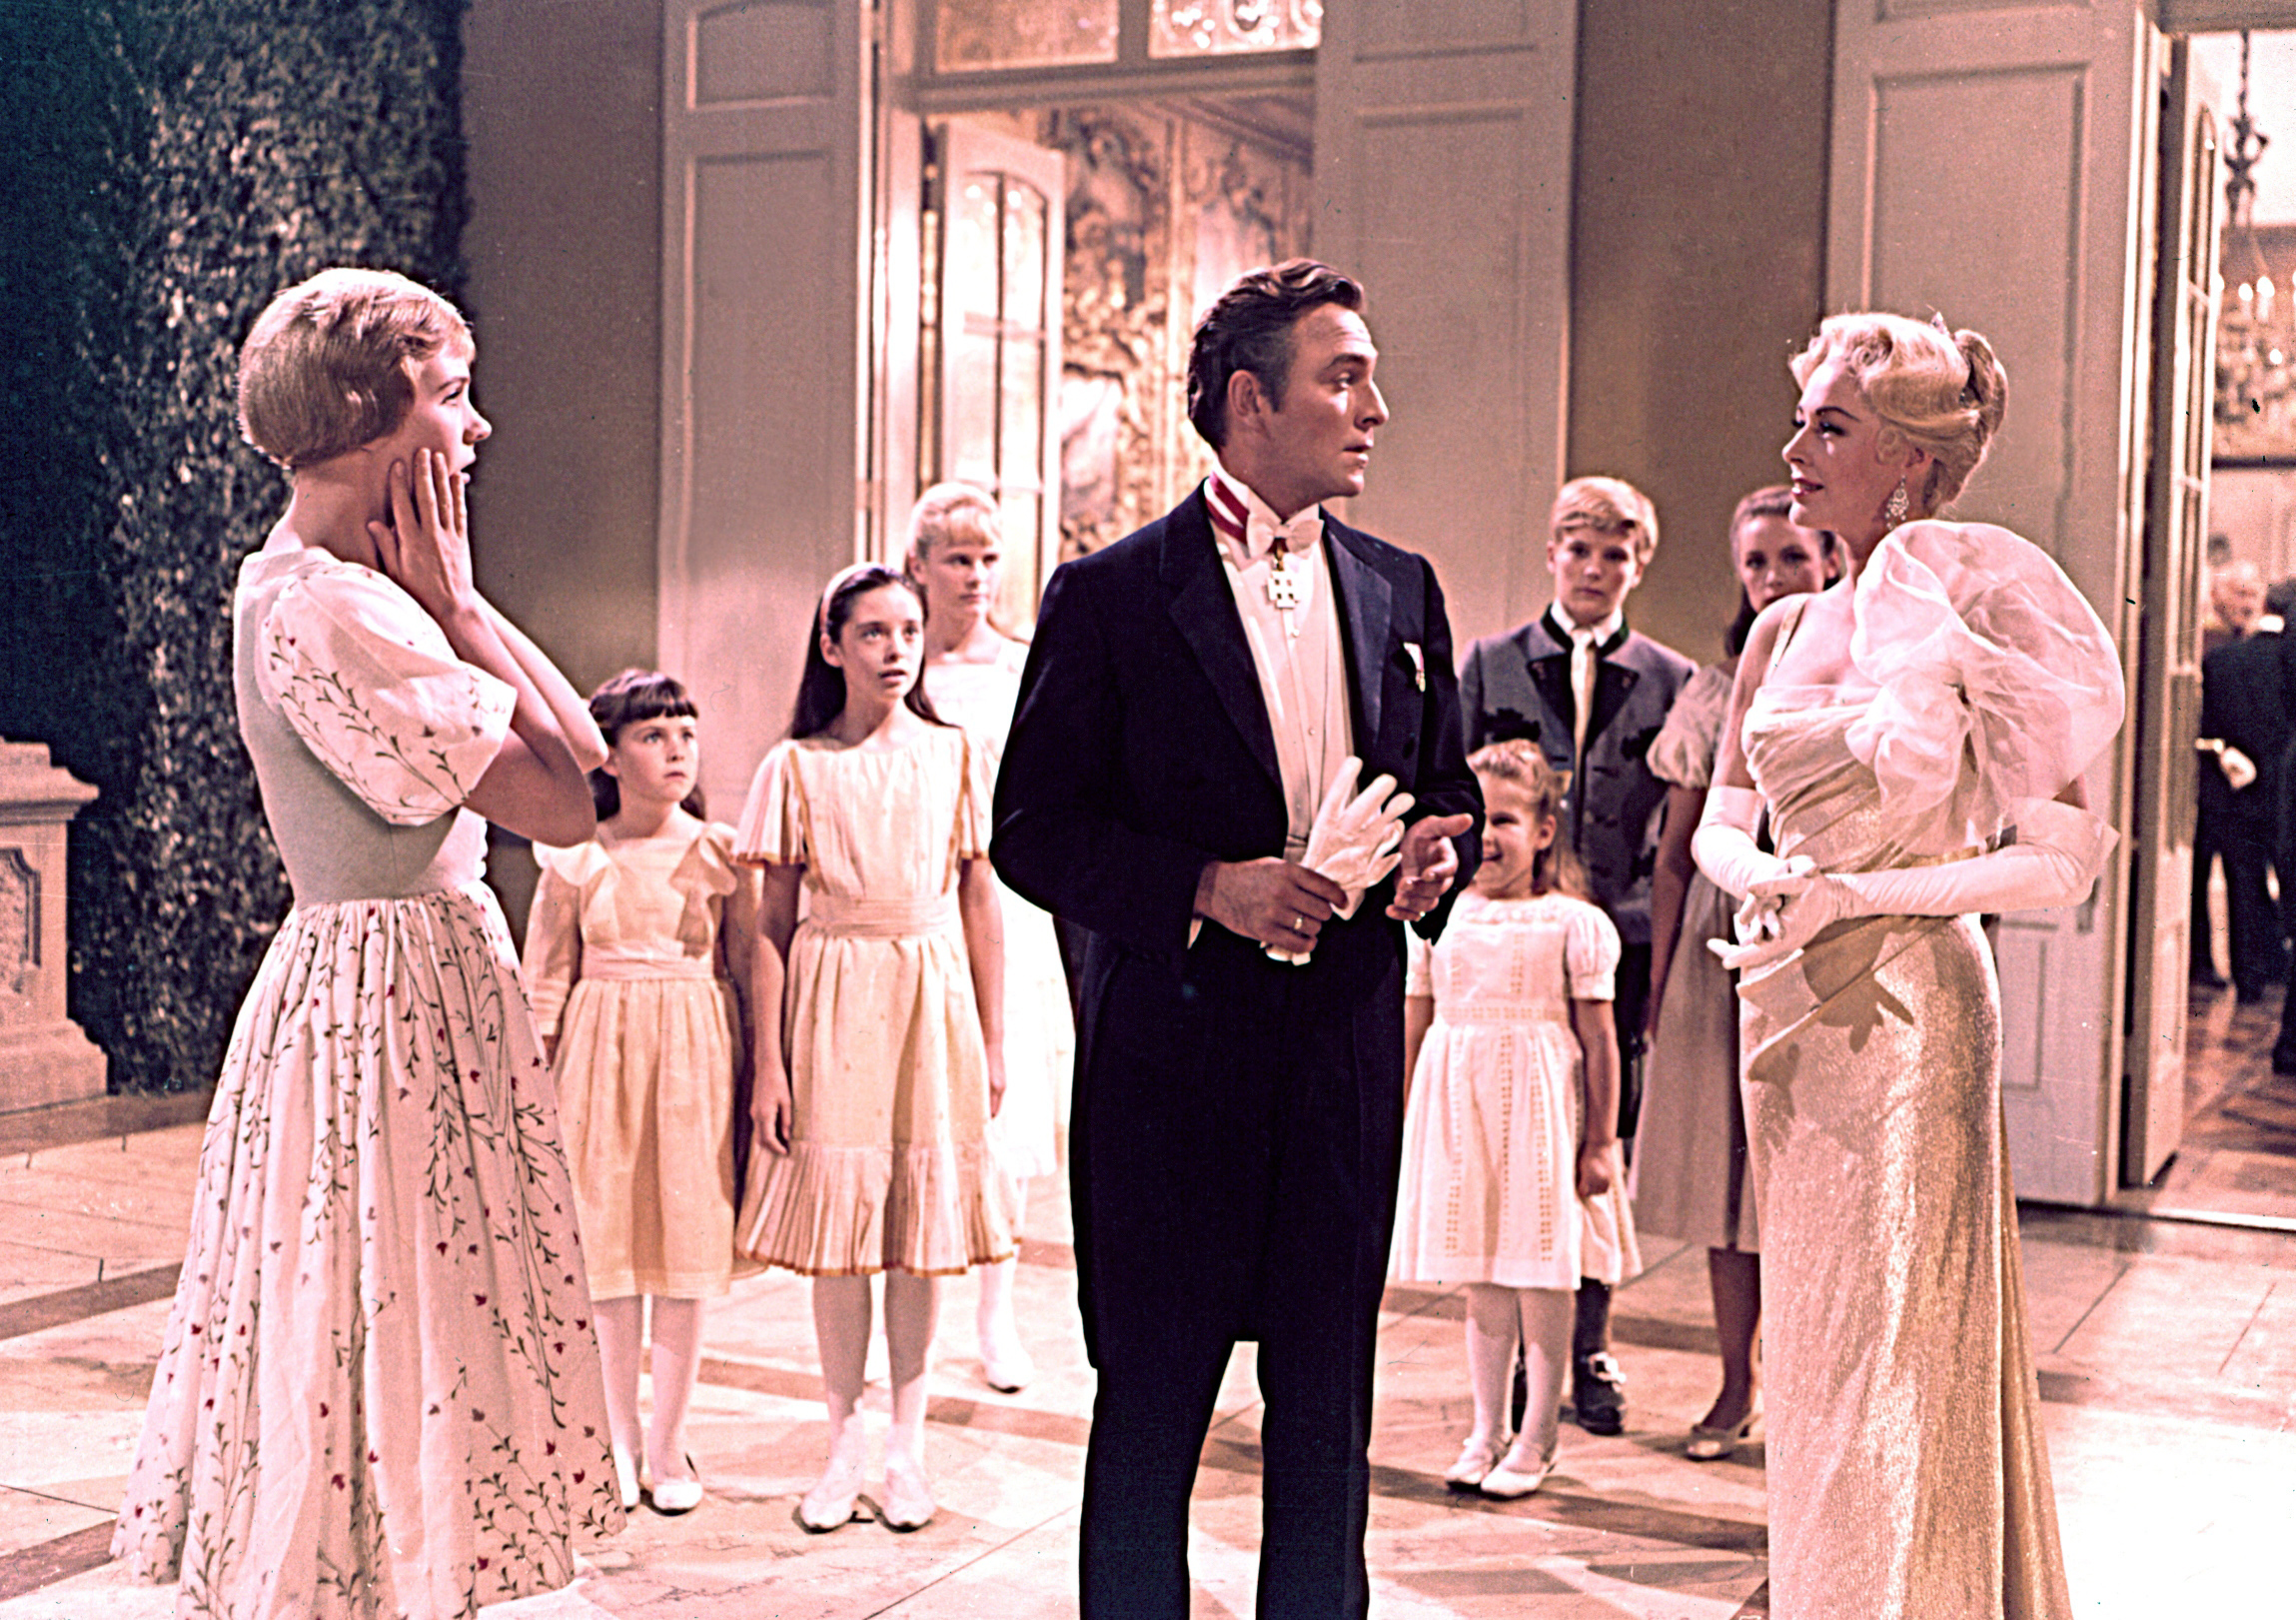 The Sound of Music' celebrates its Golden Jubilee - The